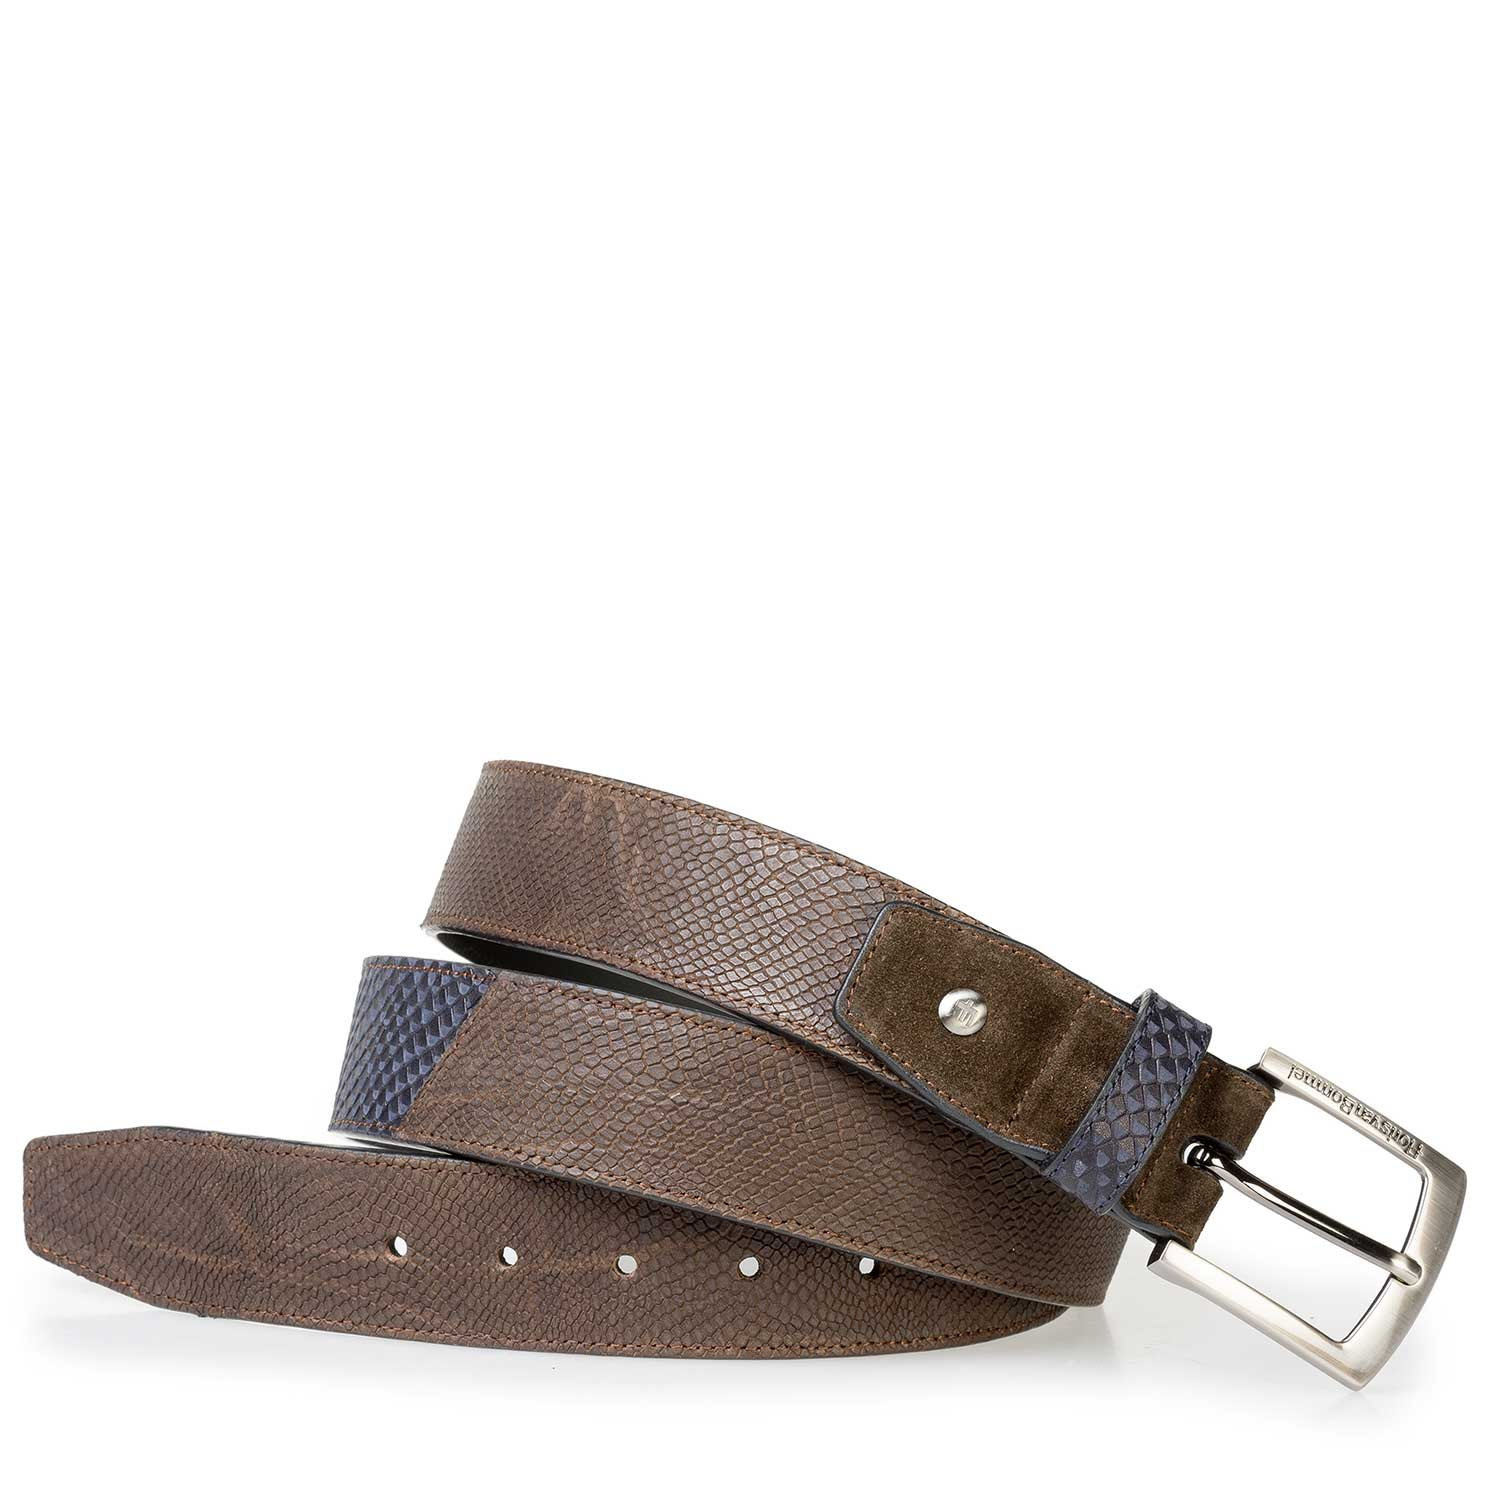 75161/18 - Brown nubuck leather belt with structural pattern